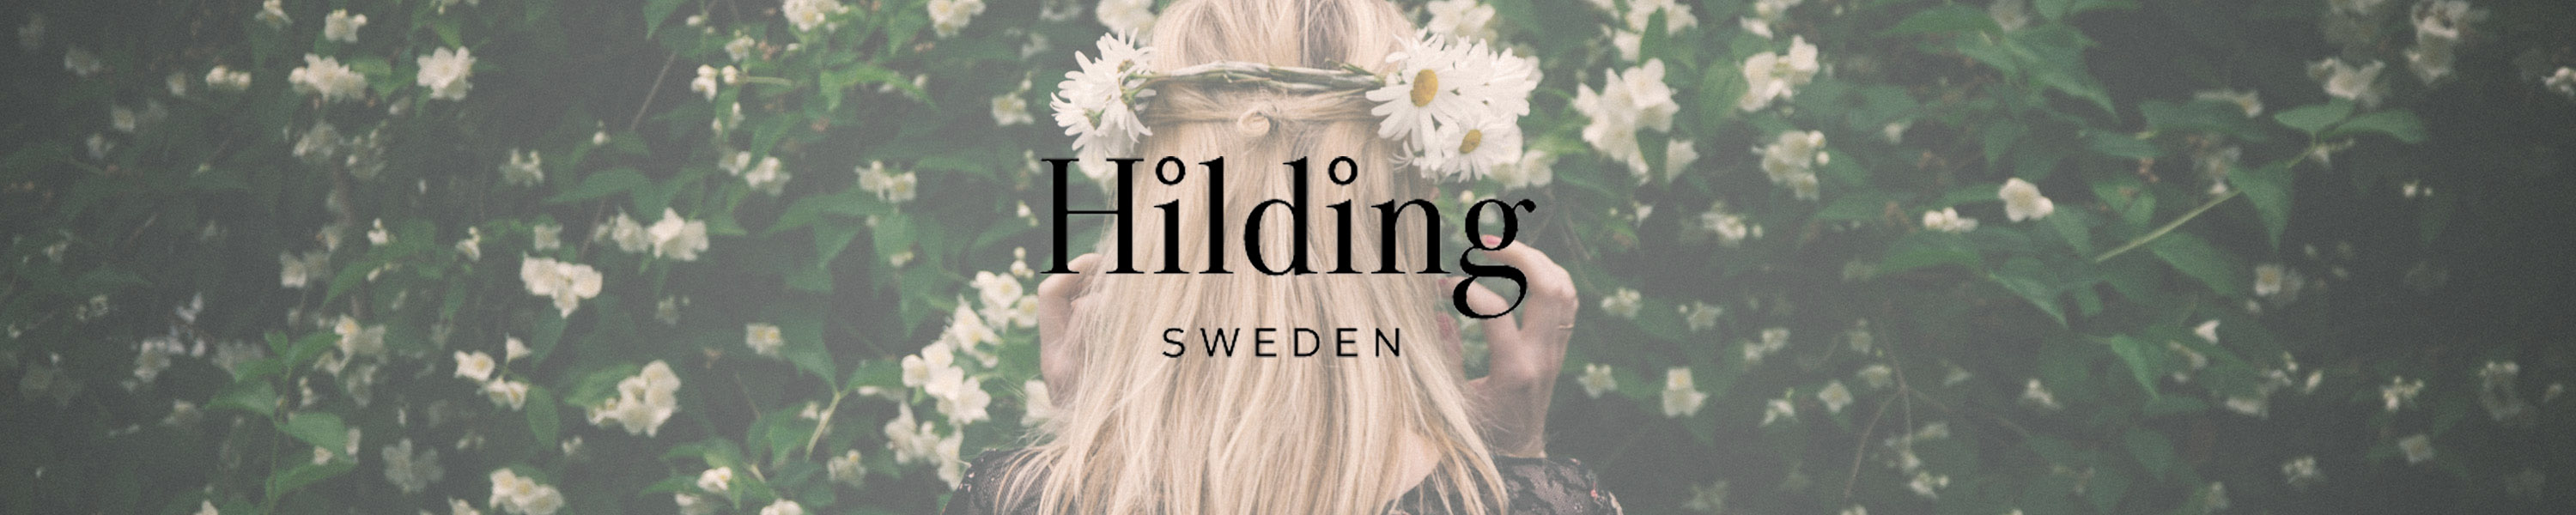 Amazon.de: Hilding Sweden